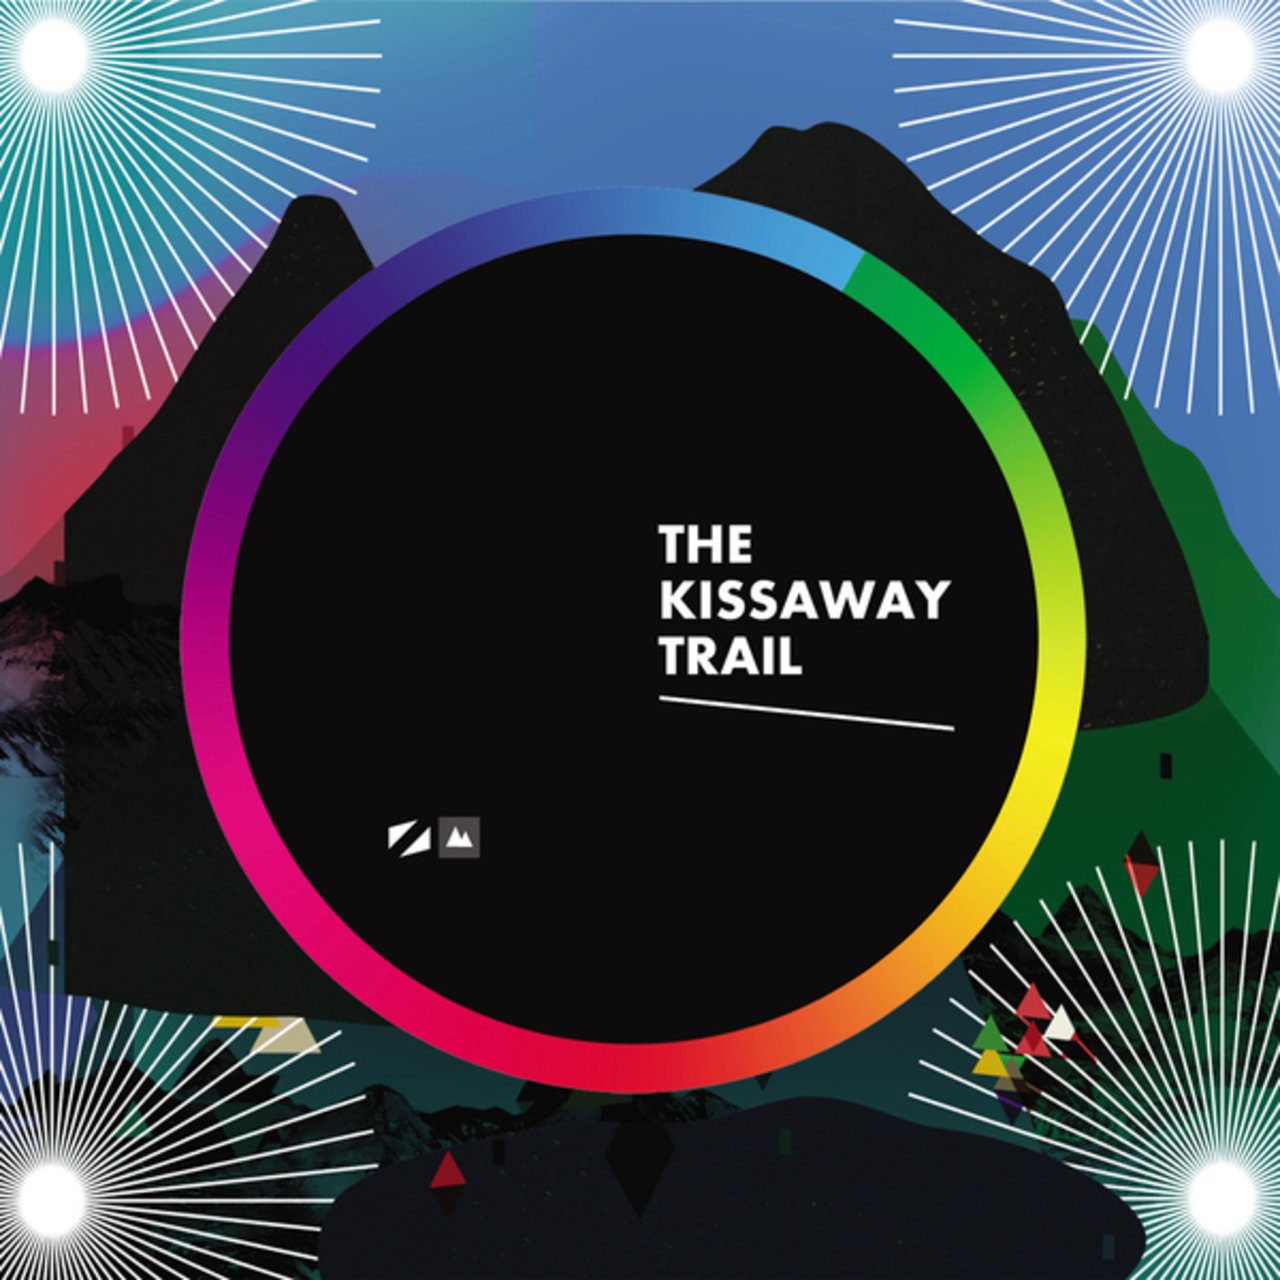 TIDAL Listen To The Kissaway Trail On